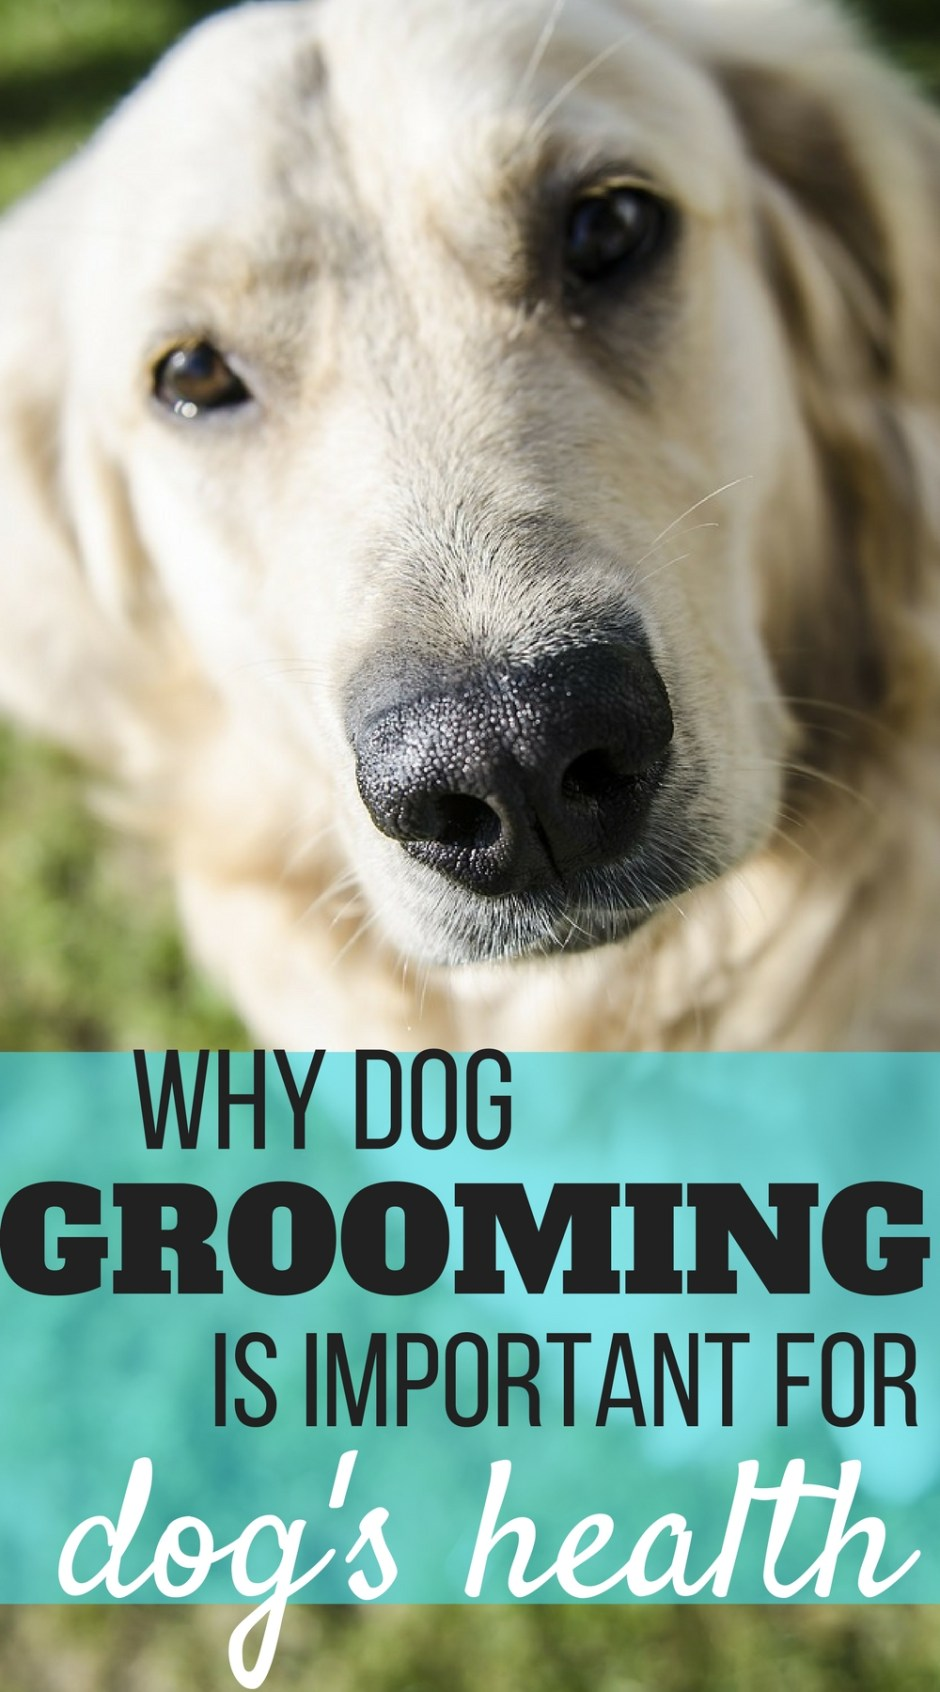 It is easy to think dog grooming is just to make the appearance of your dog more presentable, but there is more to it! Grooming your dog on a regular basis is important for your dog's health. I will share the importance of grooming for your dog's health in this article.